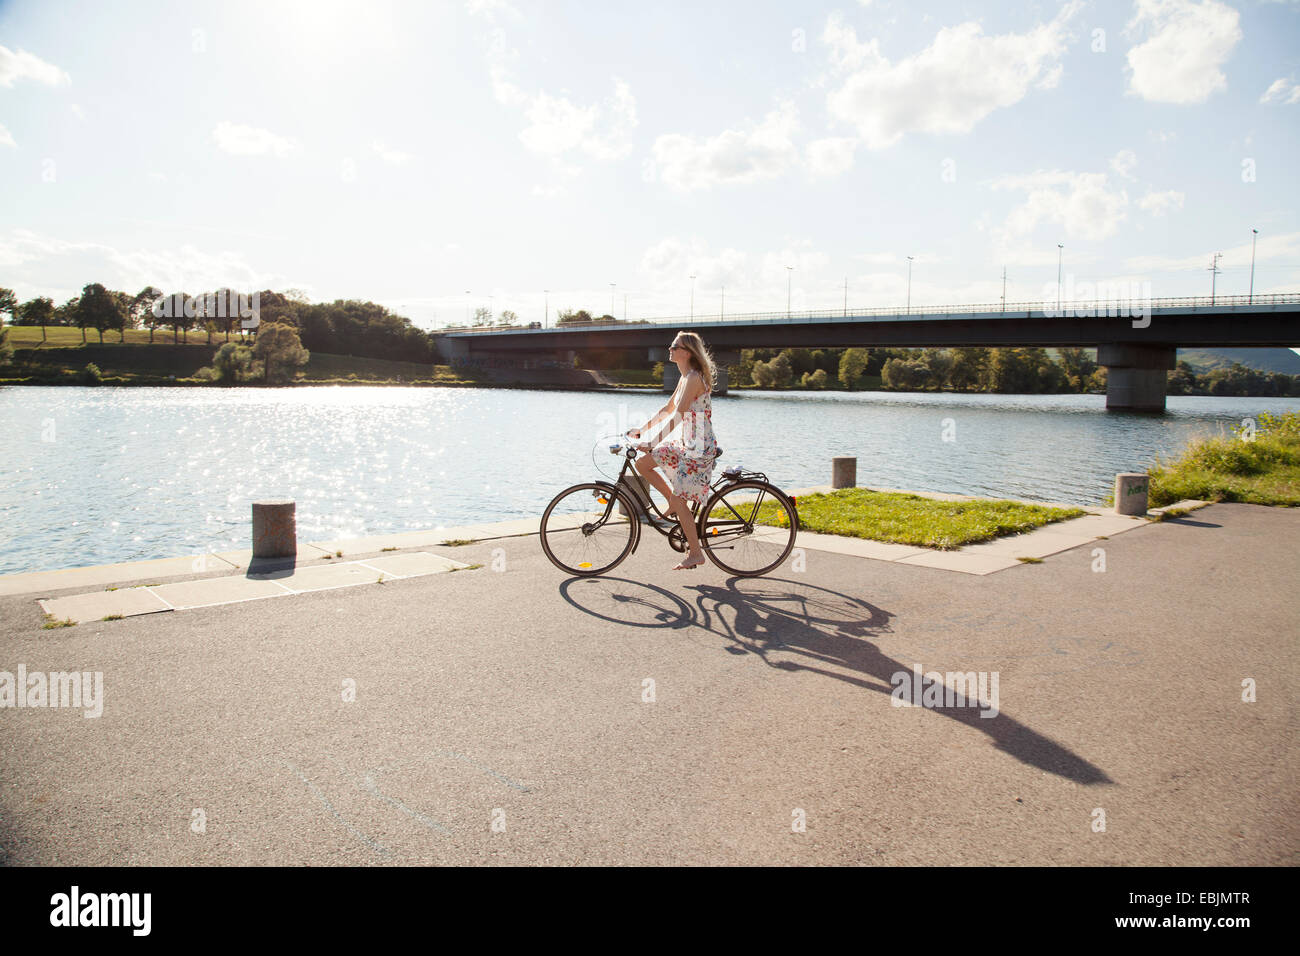 Young woman cycling at riverside, Danube Island, Vienna, Austria - Stock Image